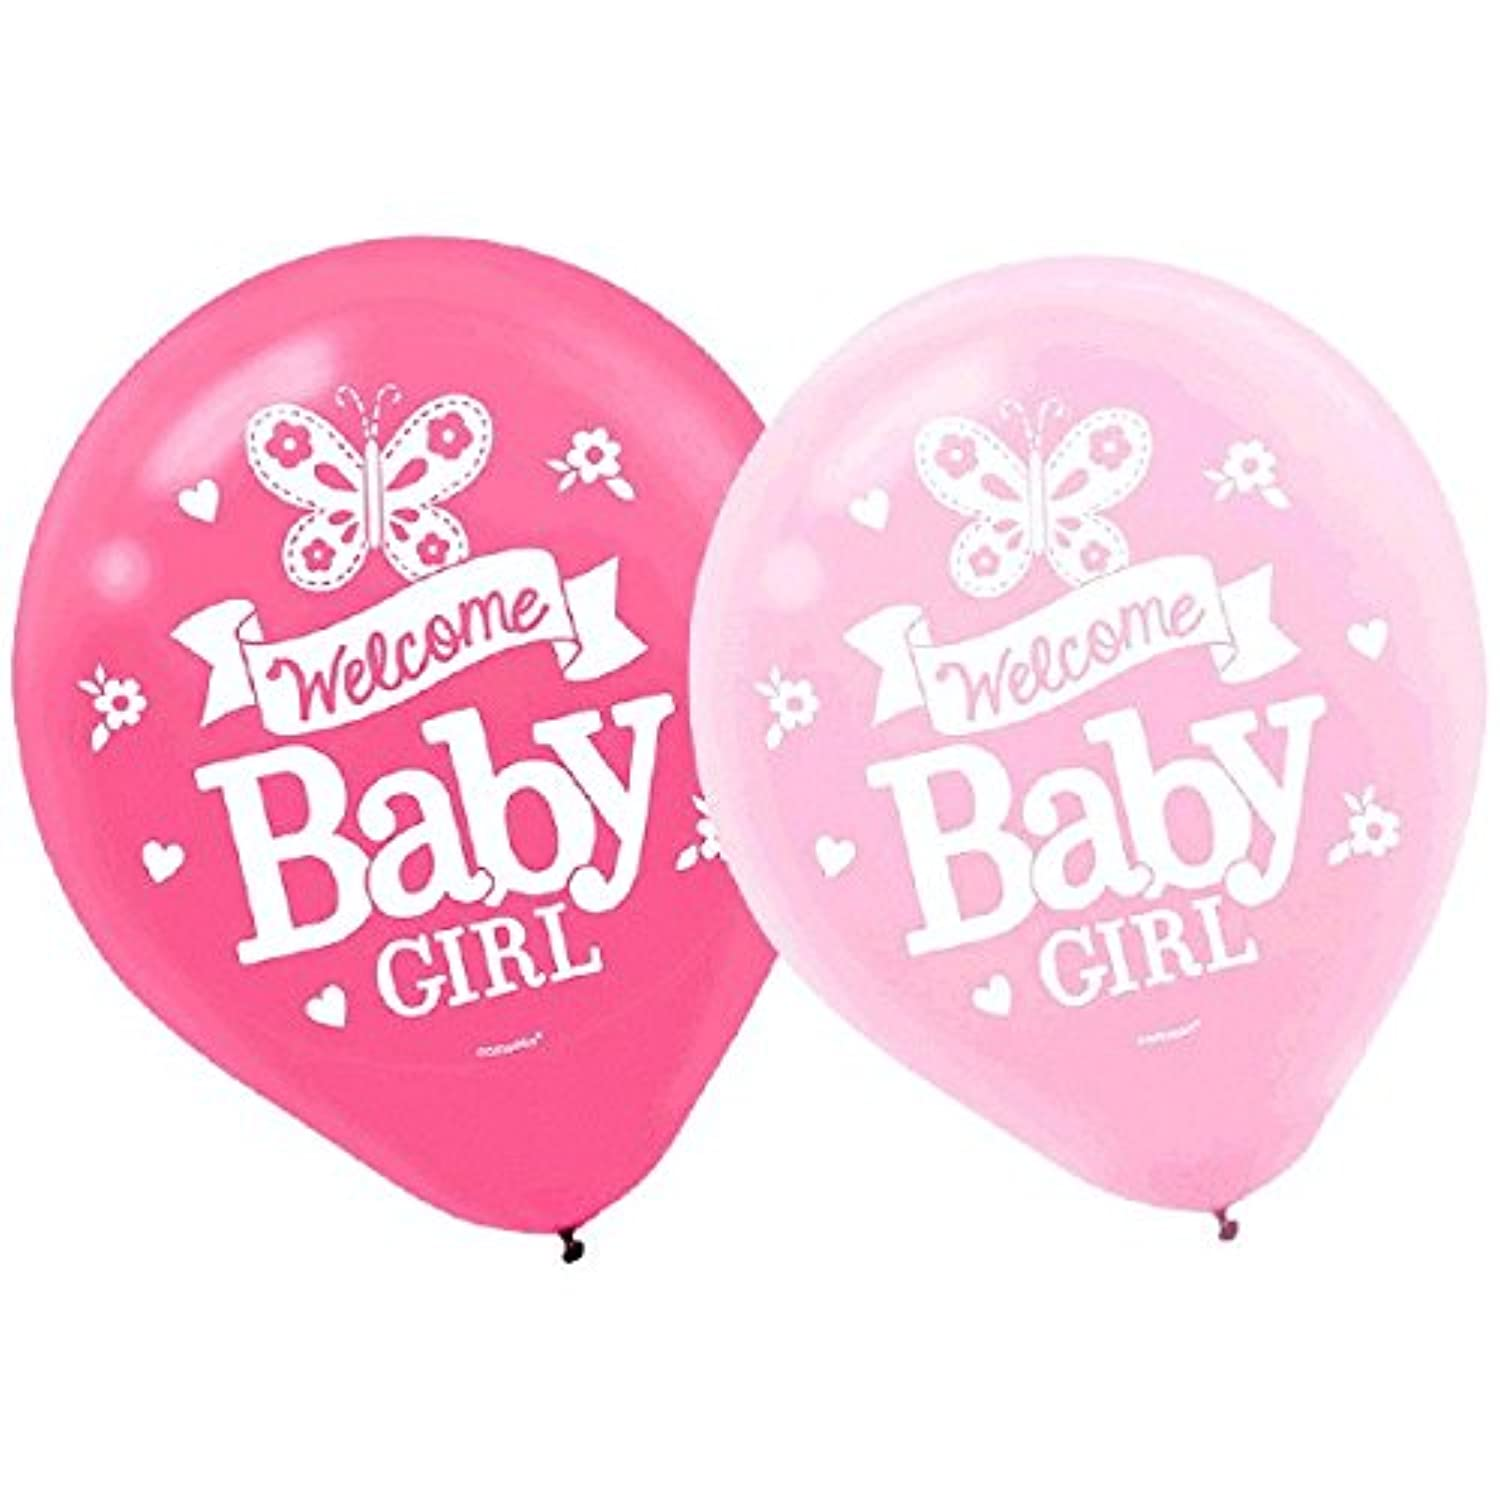 Amscan Appealing Welcome Little One Girl Printed Latex Balloonsベビーシャワーパーティーデコレーション、12インチ、ピンク/ホワイト/グリーン/ブルー